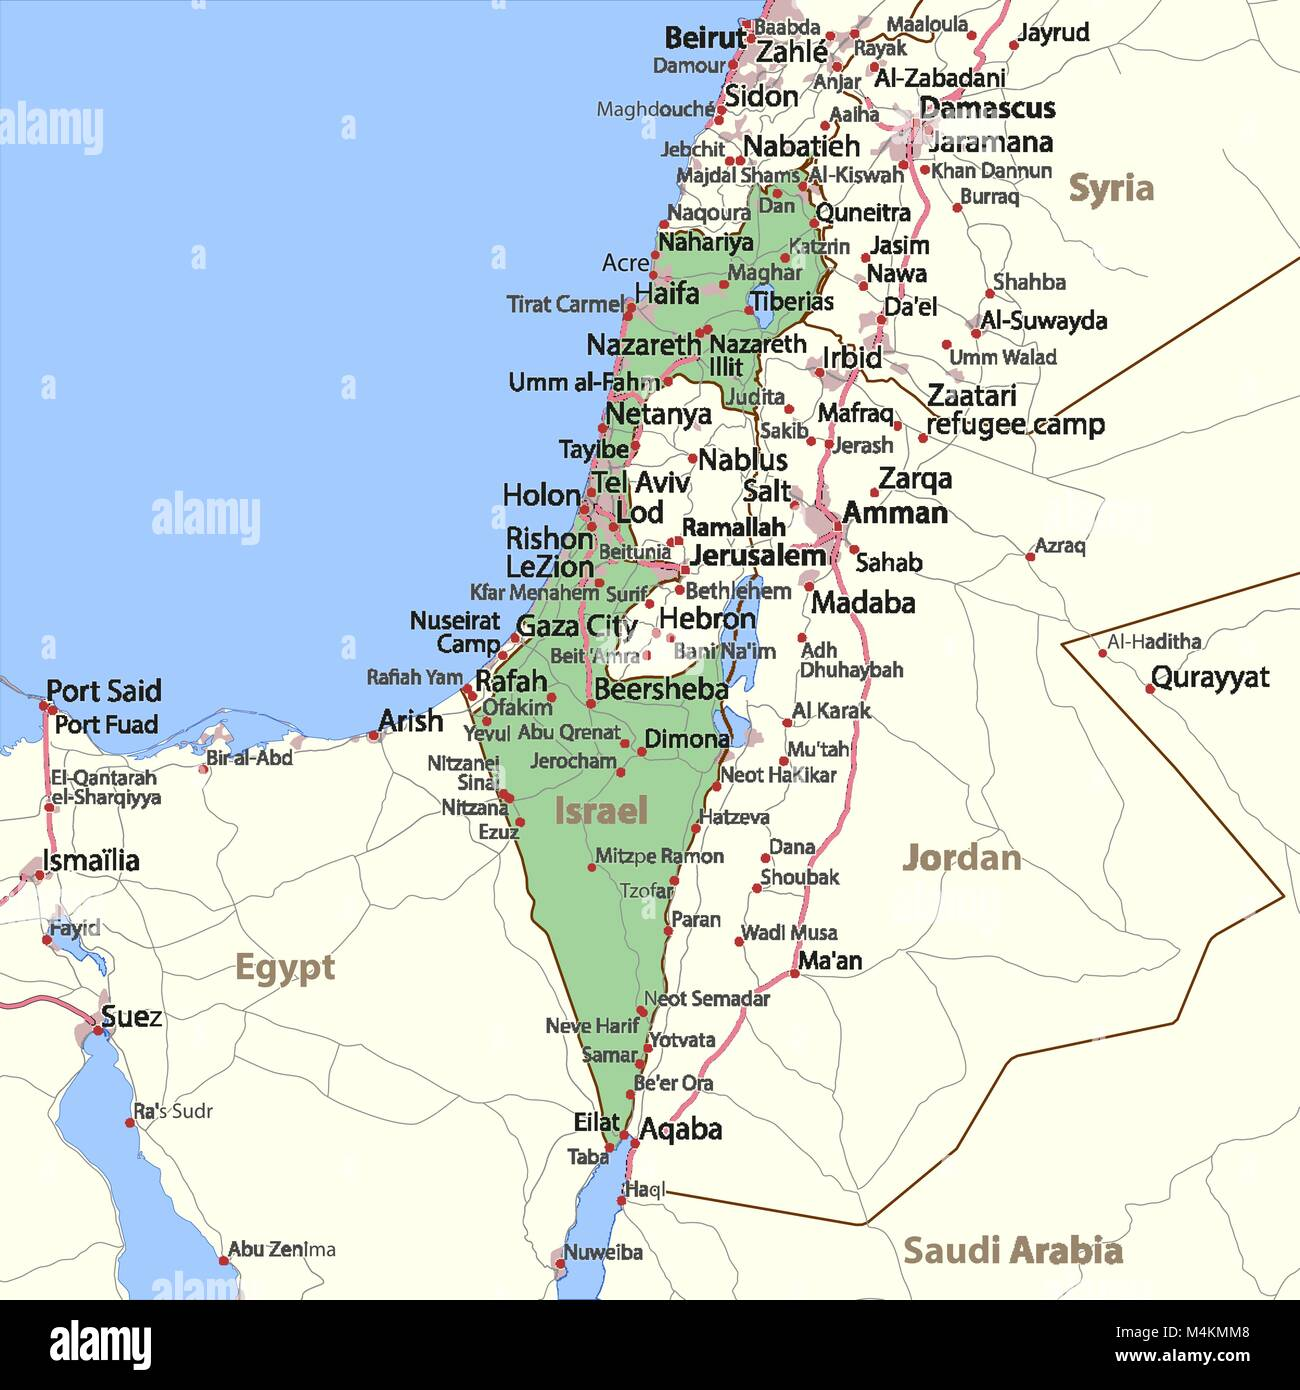 Israel map stock vector images alamy map of israel shows country borders urban areas place names and roads gumiabroncs Choice Image